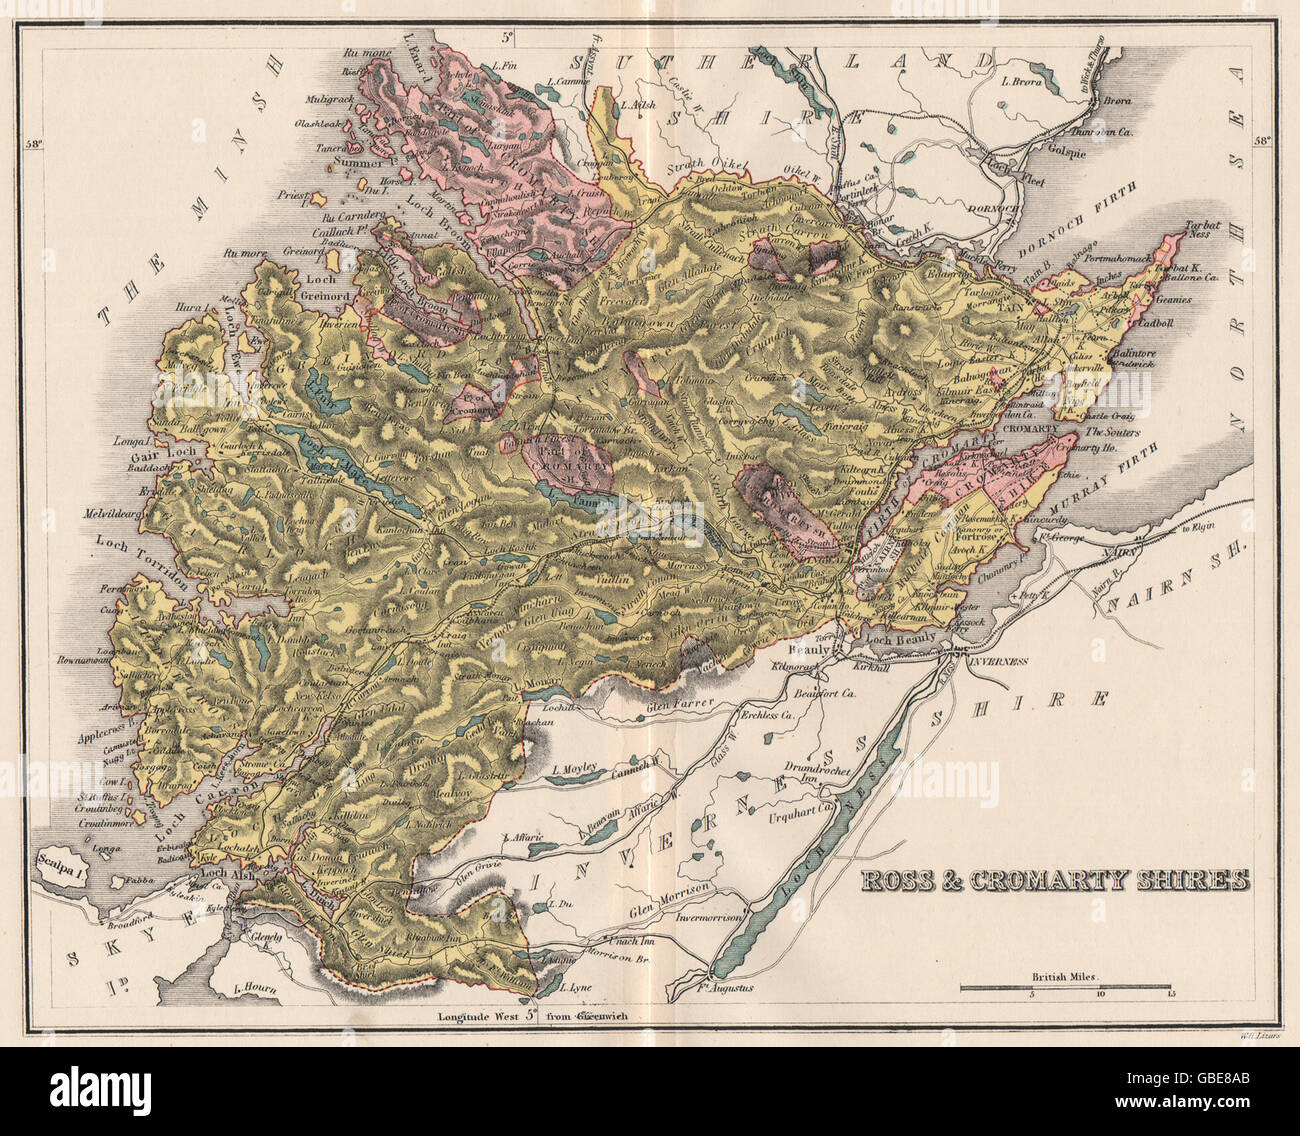 ROSS-SHIRE & CROMARTYSHIRE: Antique county map. Scotland. LIZARS, 1885 - Stock Image